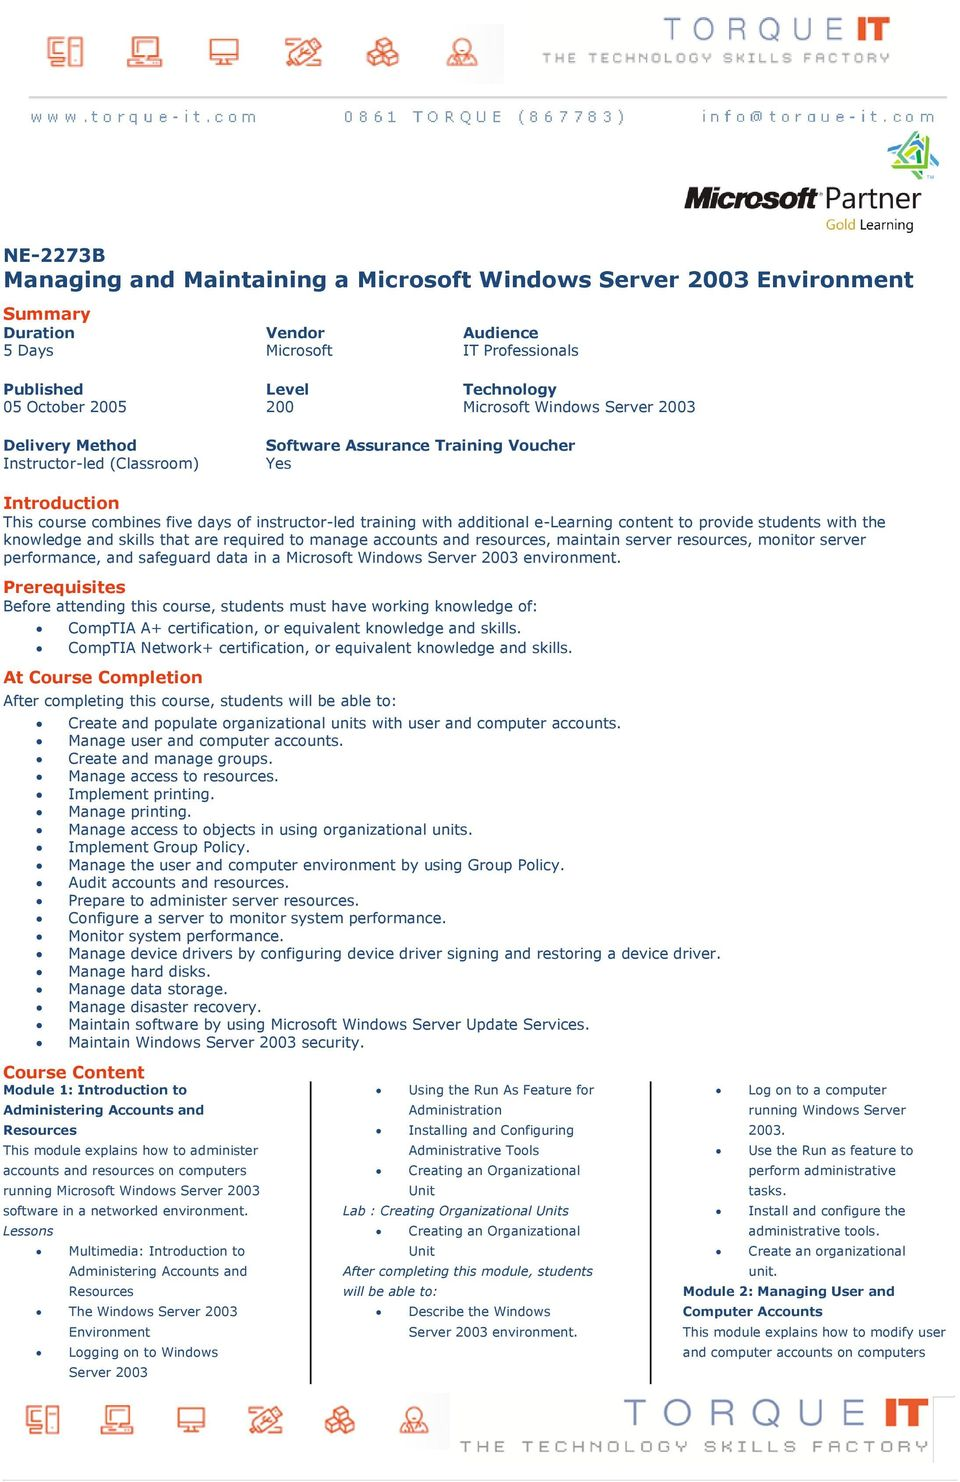 e-learning content to provide students with the knowledge and skills that are required to manage accounts and resources, maintain server resources, monitor server performance, and safeguard data in a